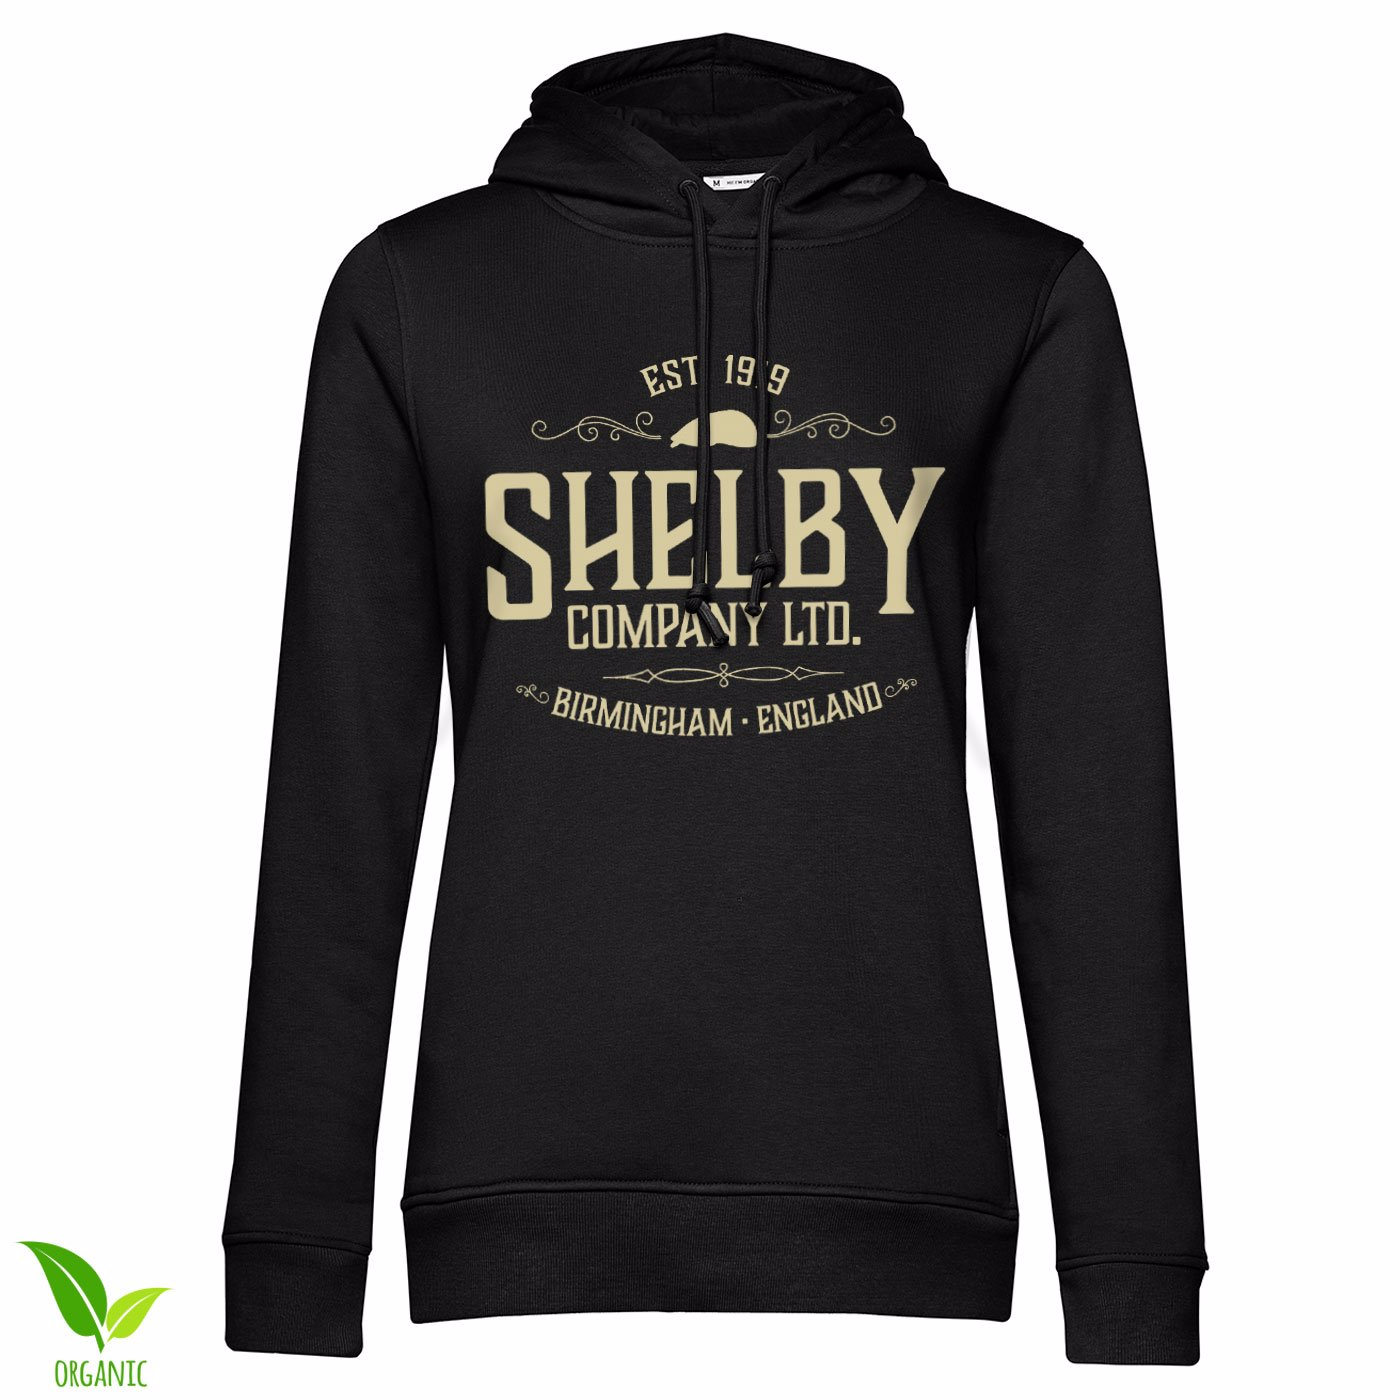 Shelby Company Limited Girls Hoodie